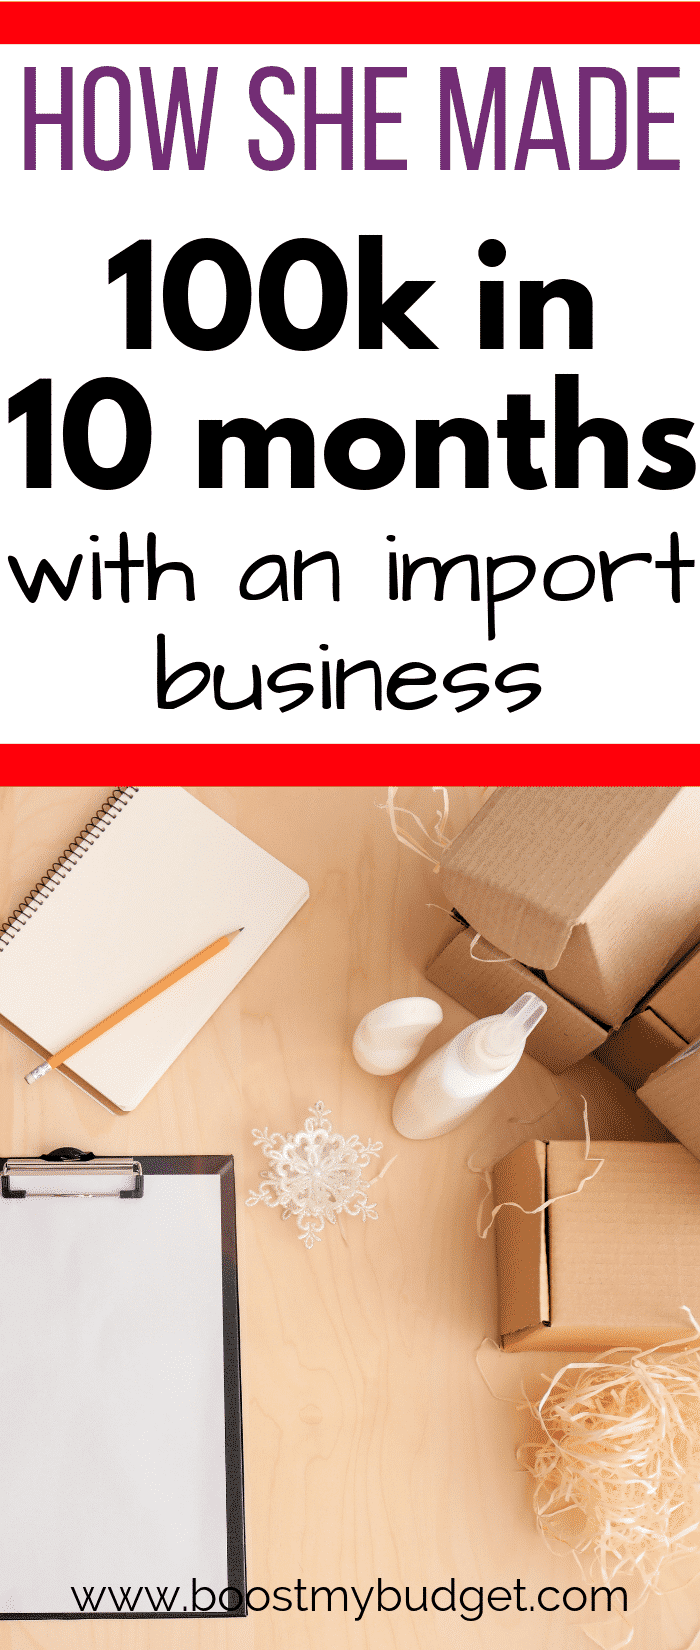 Here's a creative business idea... she set up a side hustle importing craft goods wholesale and selling to crafters in the UK. Learn how she does it and how you can start your own business too!